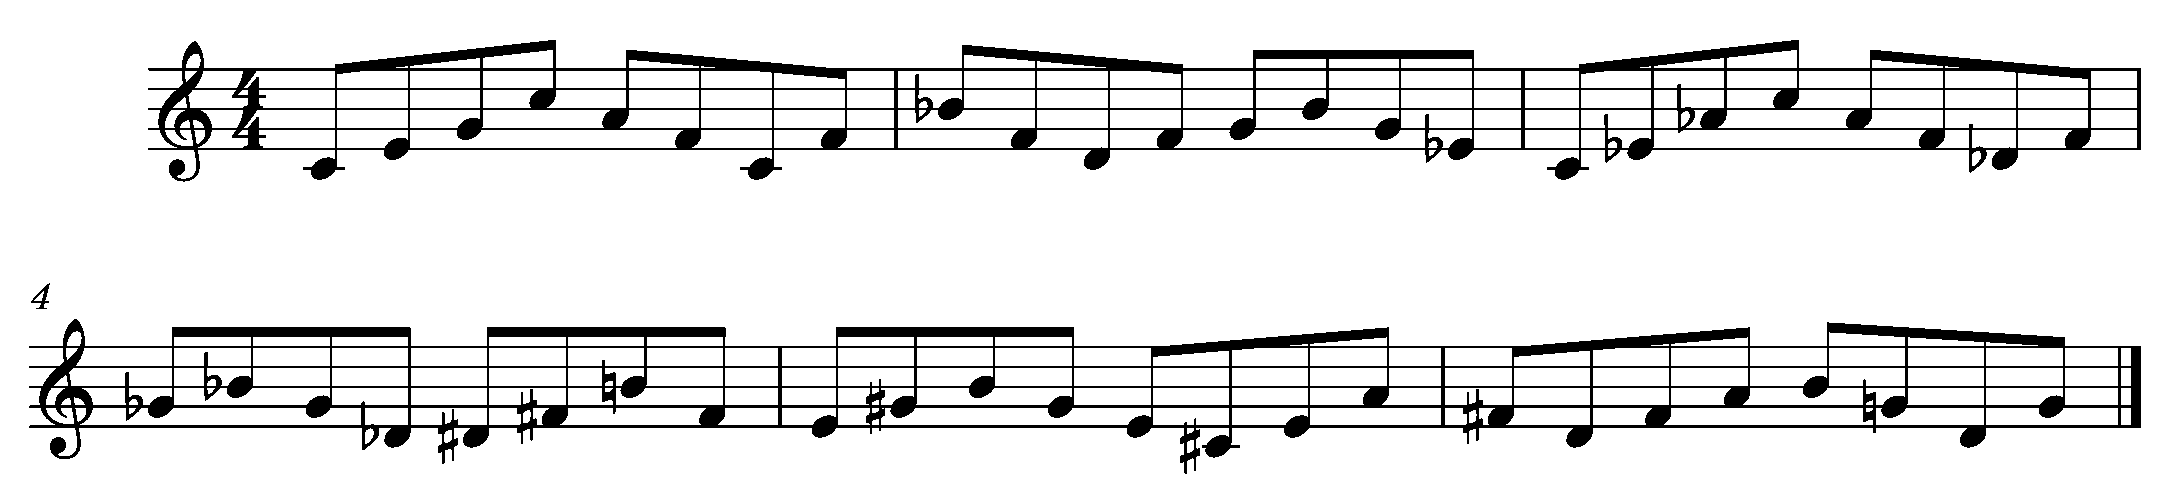 Ex. 2 Triads Within an Octave